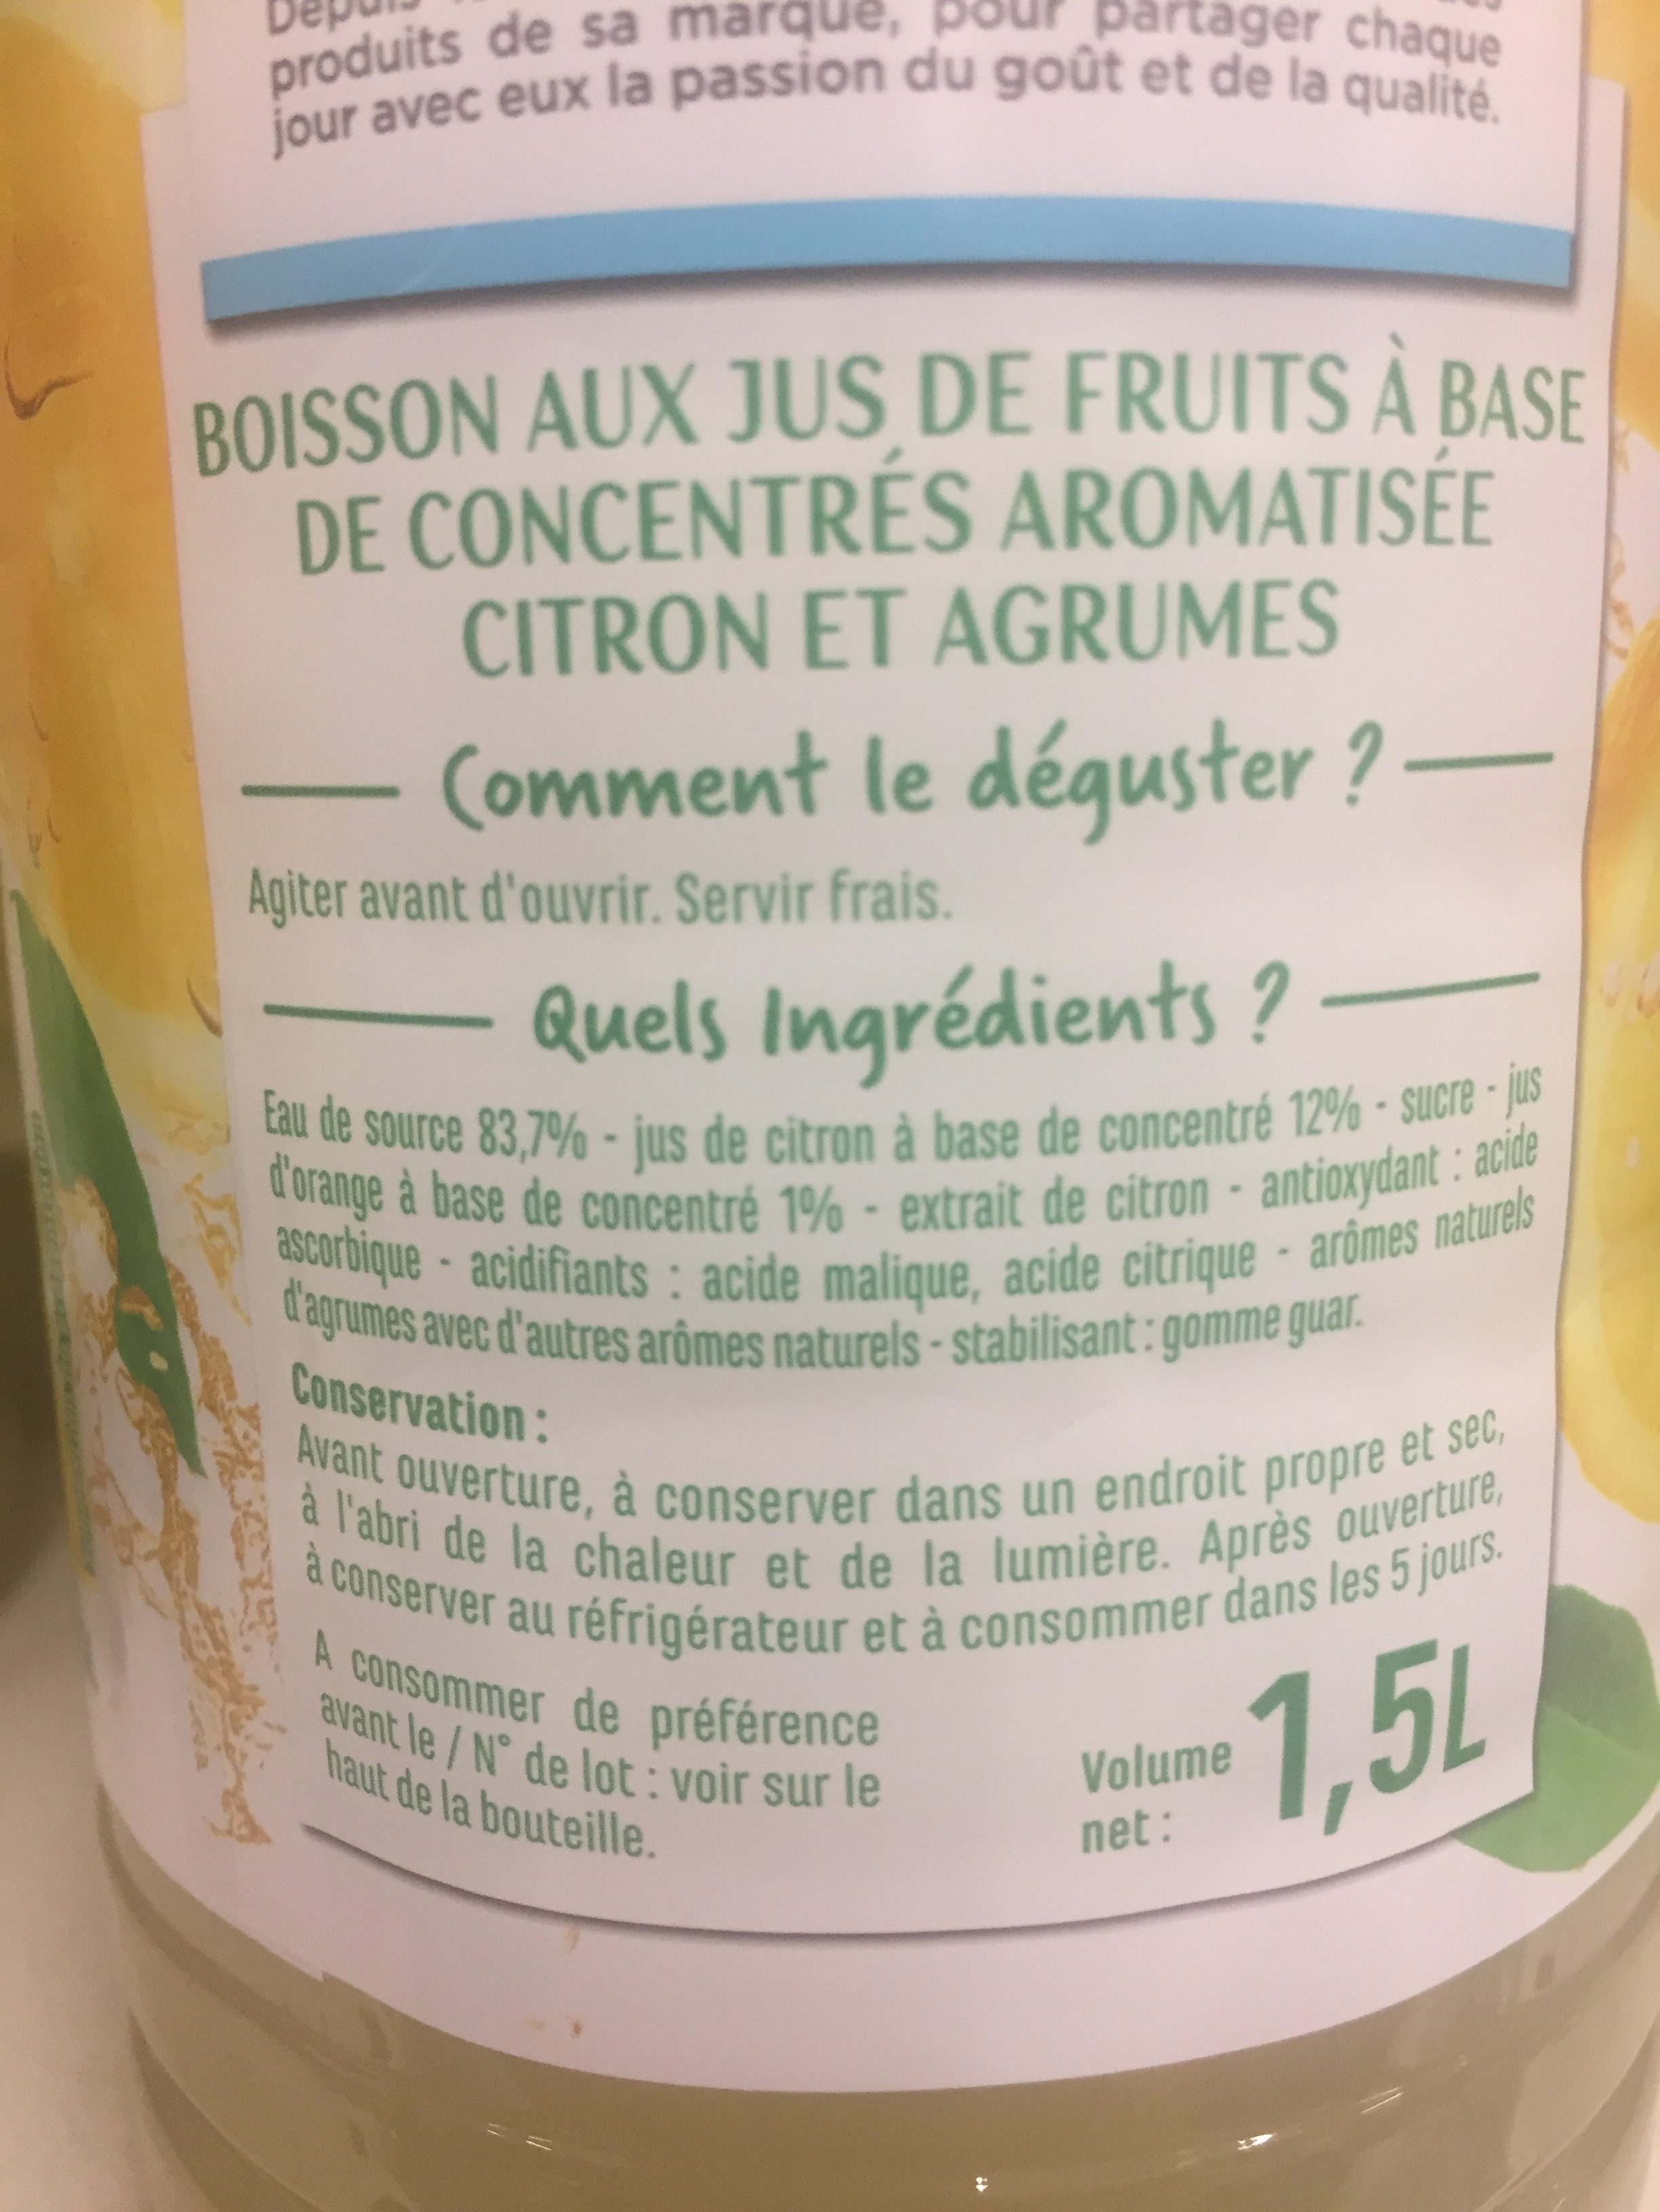 Citronnade - à l'eau de source - Ingredients